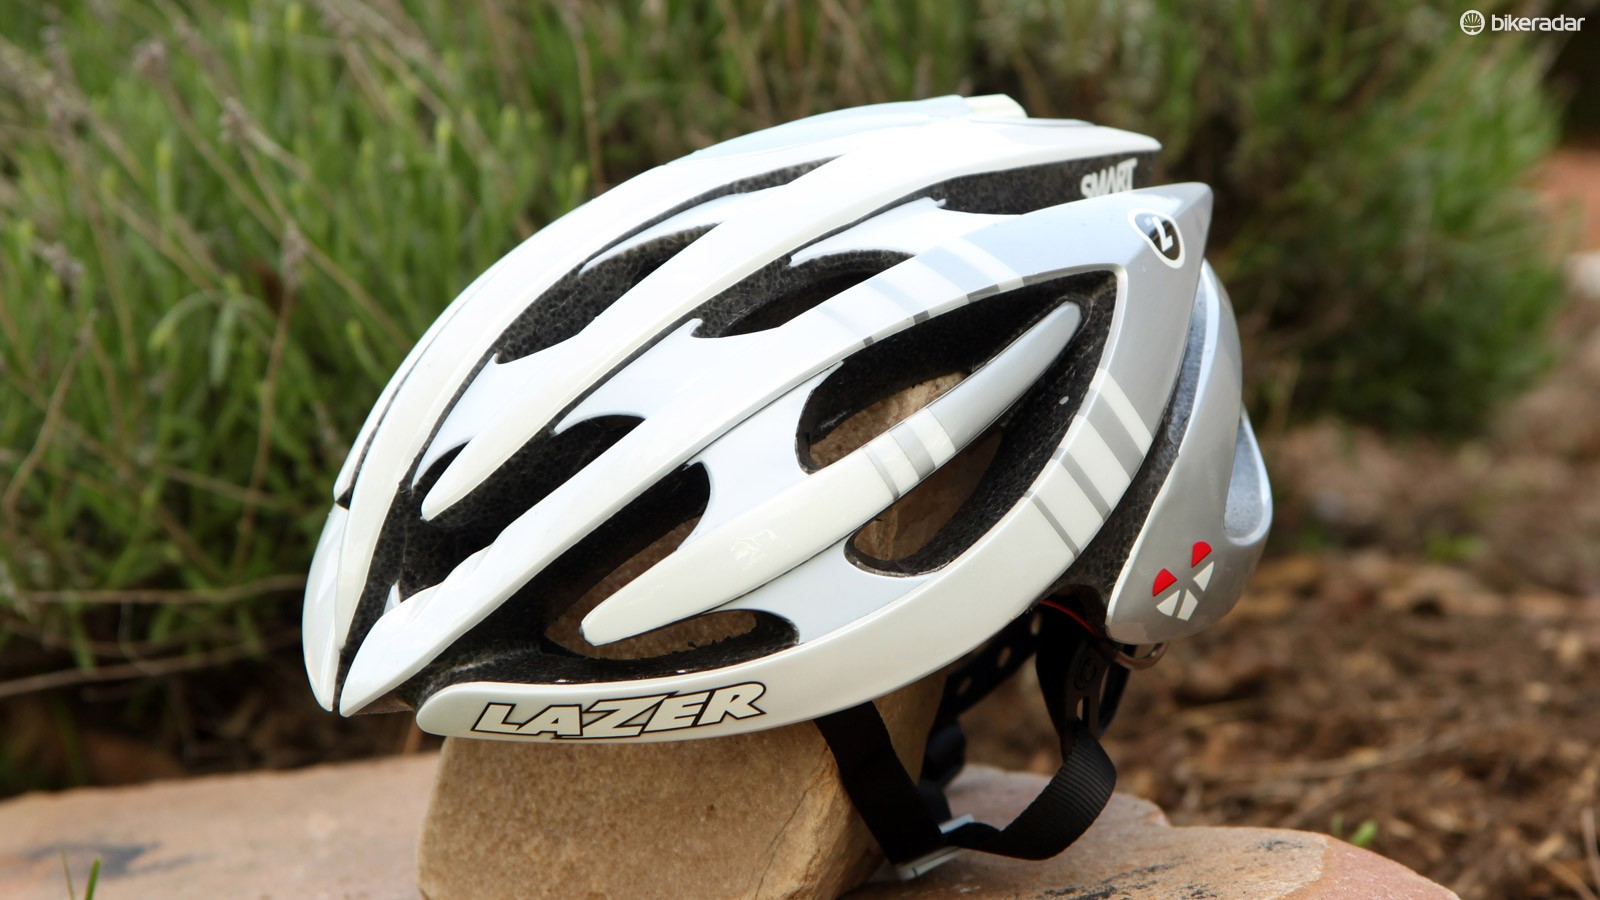 The Lazer Genesis LifeBEAM starts out as a standard Genesis helmet but Israeli company Lifebeam then adds in a slick integrated heart rate monitor